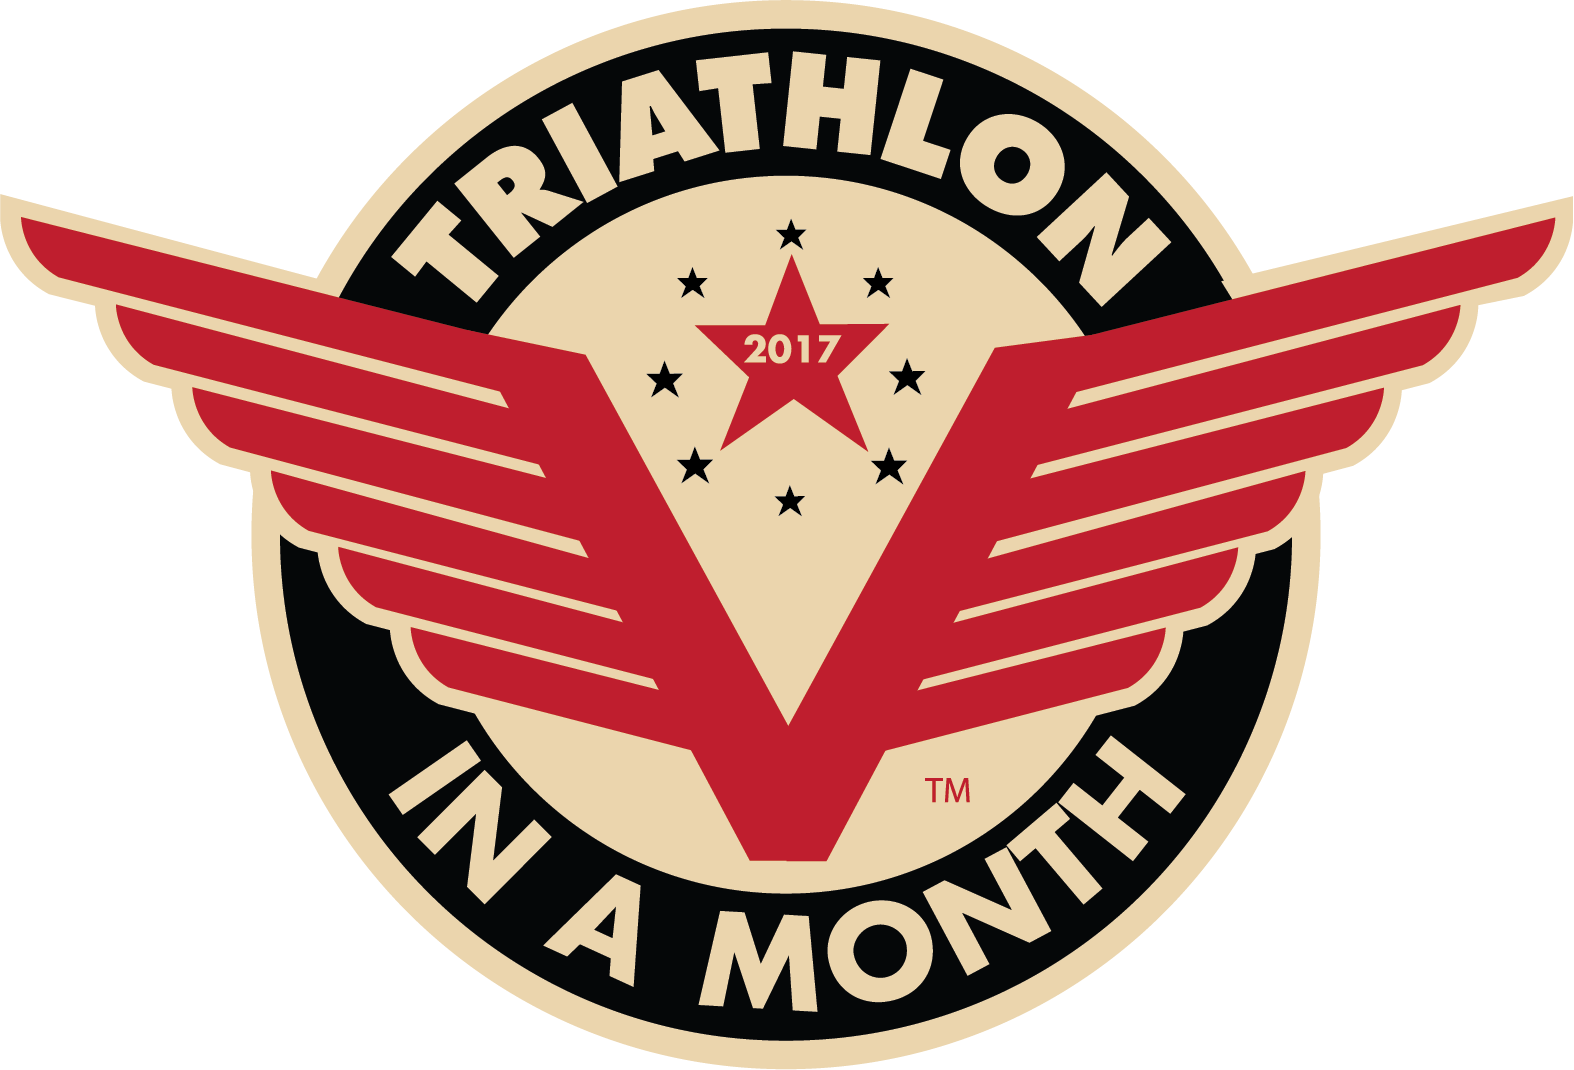 Triathlon in a Month 2018